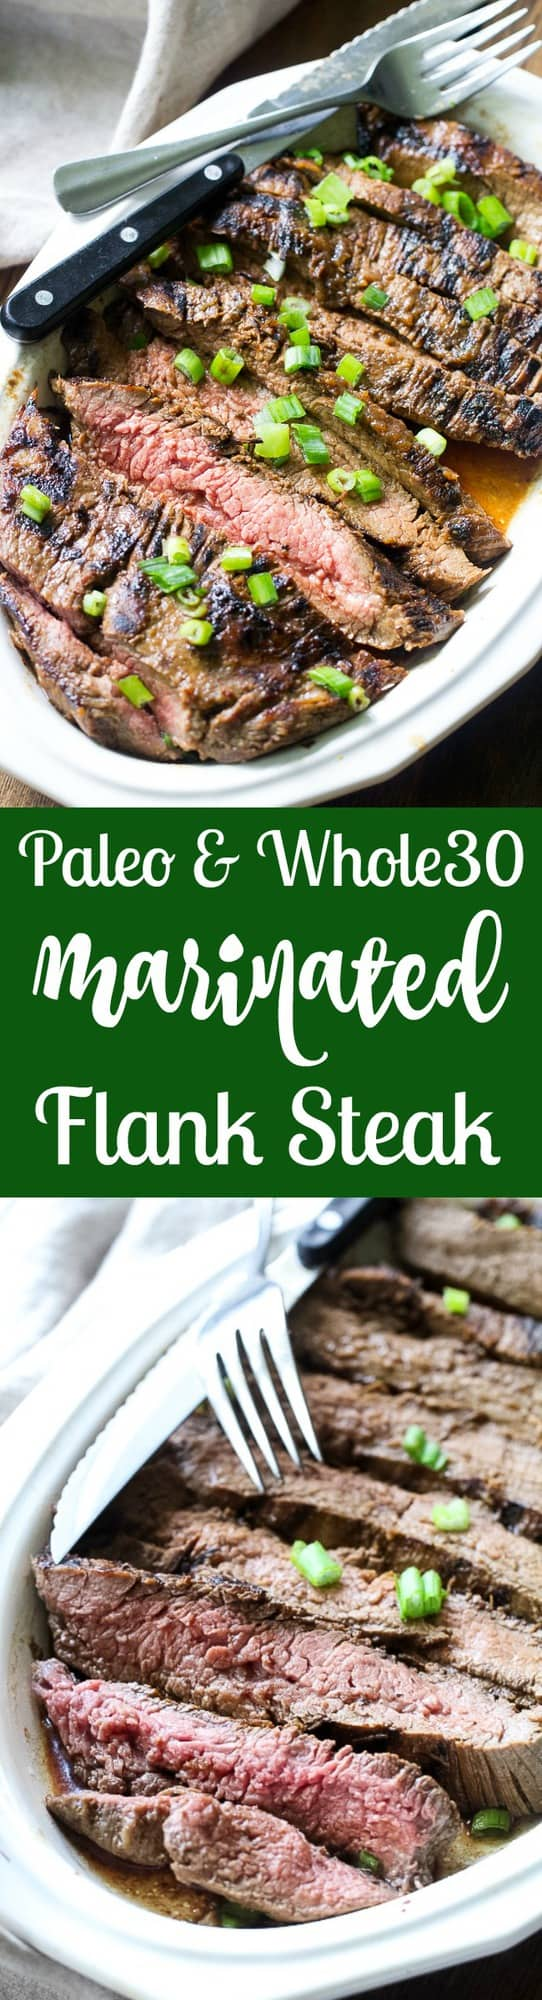 Paleo Marinated Flank Steak Whole30 - The Paleo Running Momma